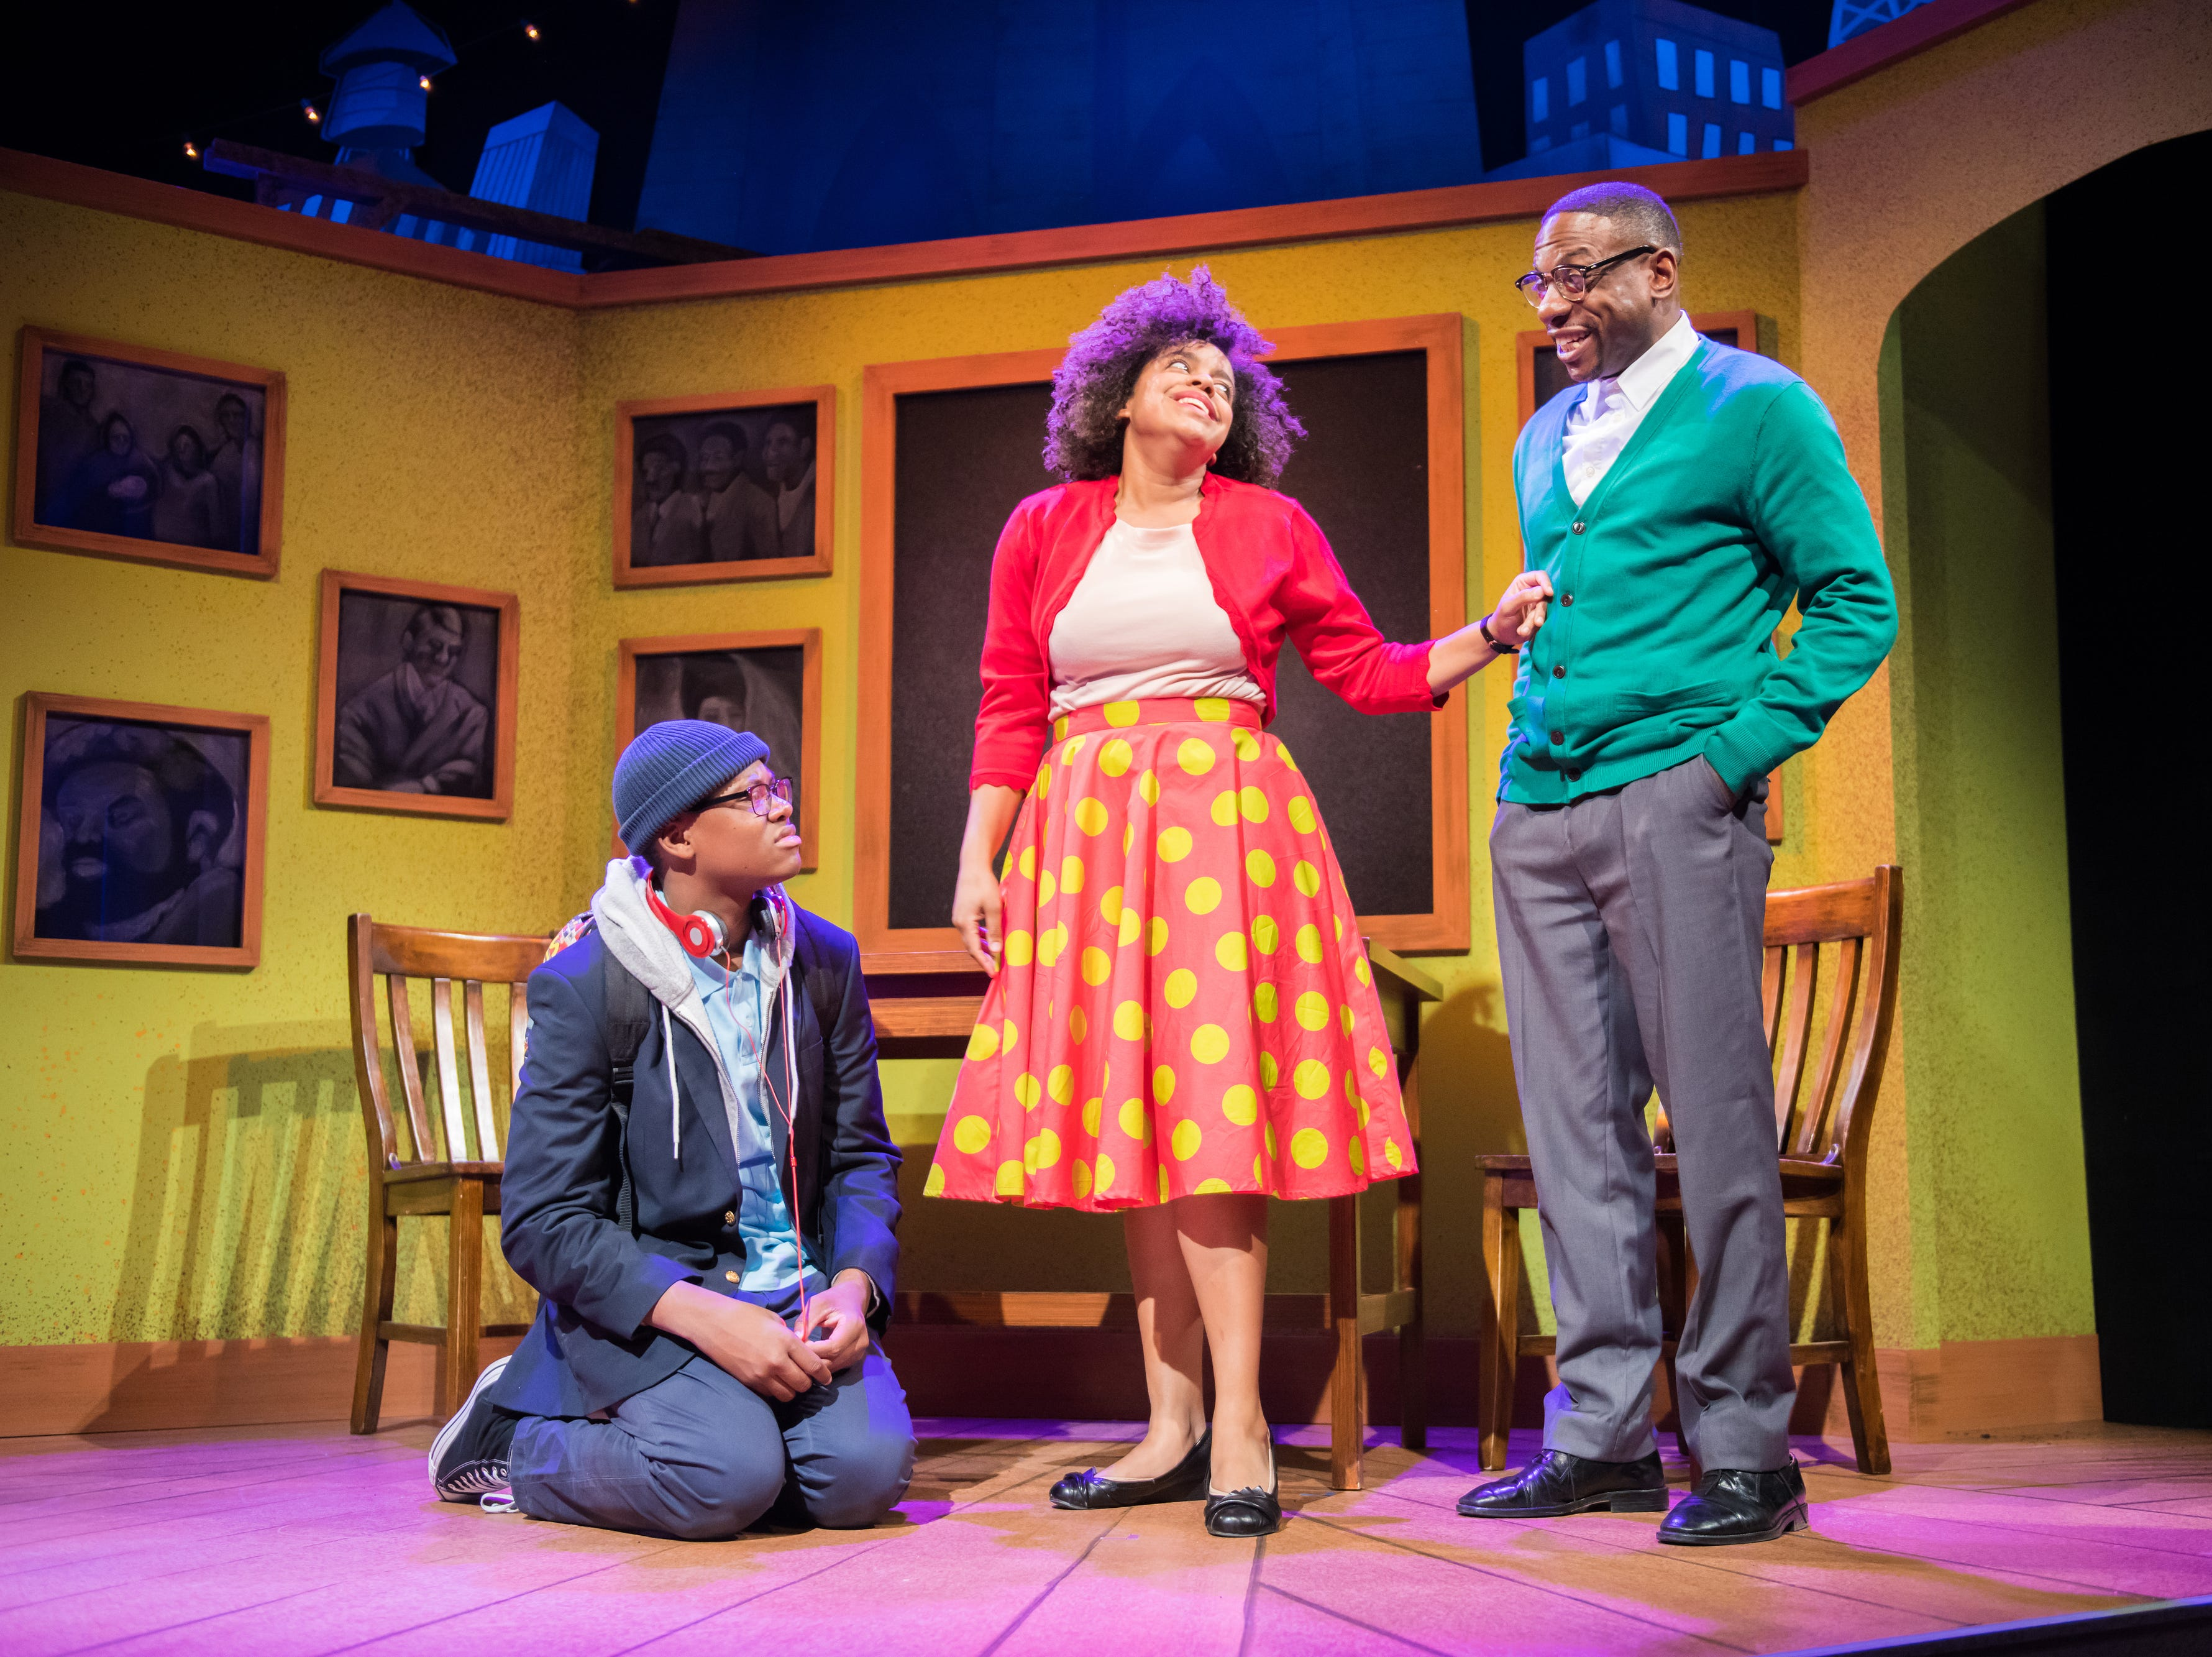 """Kamani Graham, Nadja Simmonds and Ronnel Taylor perform in First Stage's production of """"Locomotion"""" by Jacqueline Woodson, which continues through Feb. 24 at the Milwaukee Youth Arts Center, 325 W. Walnut St."""